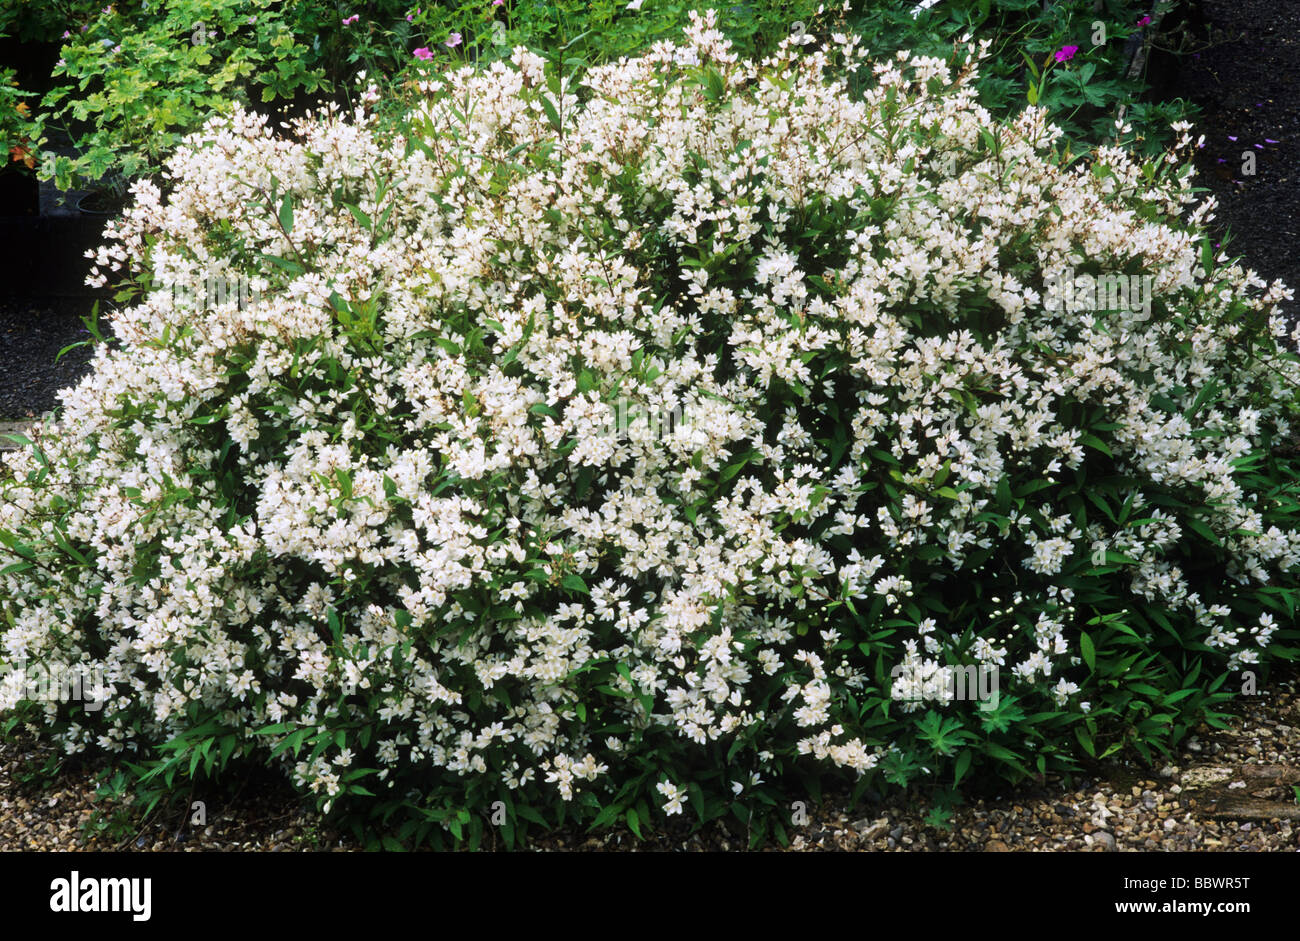 Deutzia gracilis nikko white flower flowers garden plant plants deutzia gracilis nikko white flower flowers garden plant plants mightylinksfo